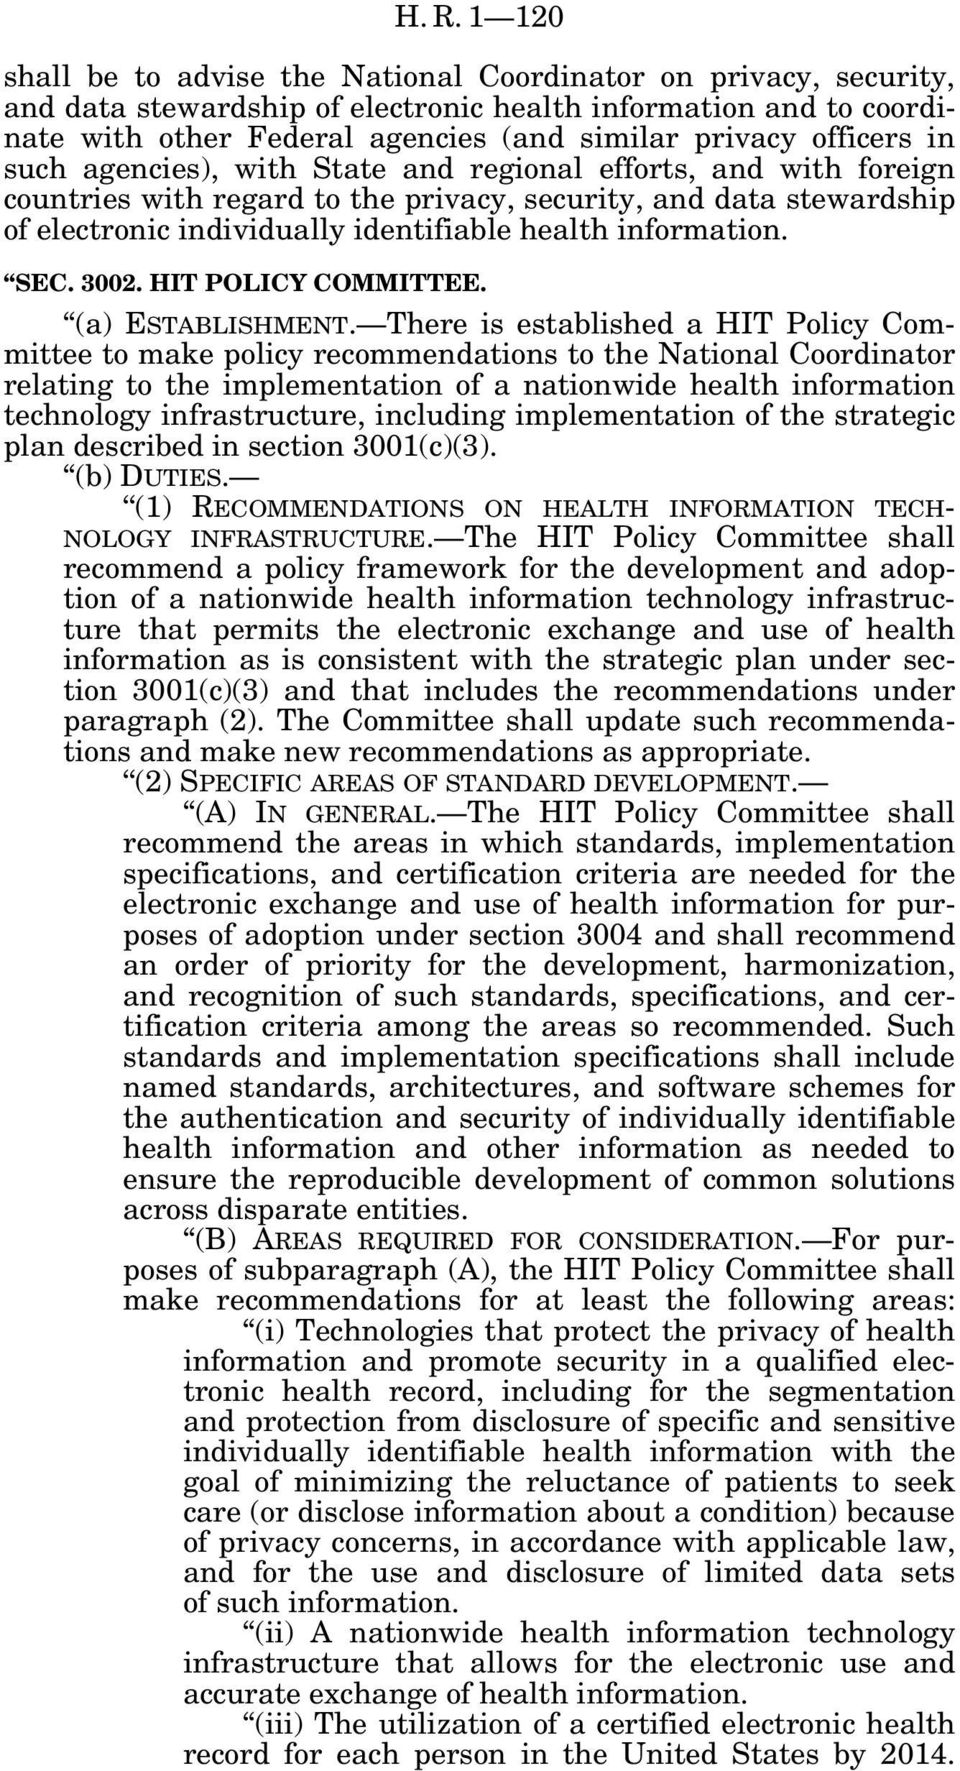 information. SEC. 3002. HIT POLICY COMMITTEE. (a) ESTABLISHMENT.